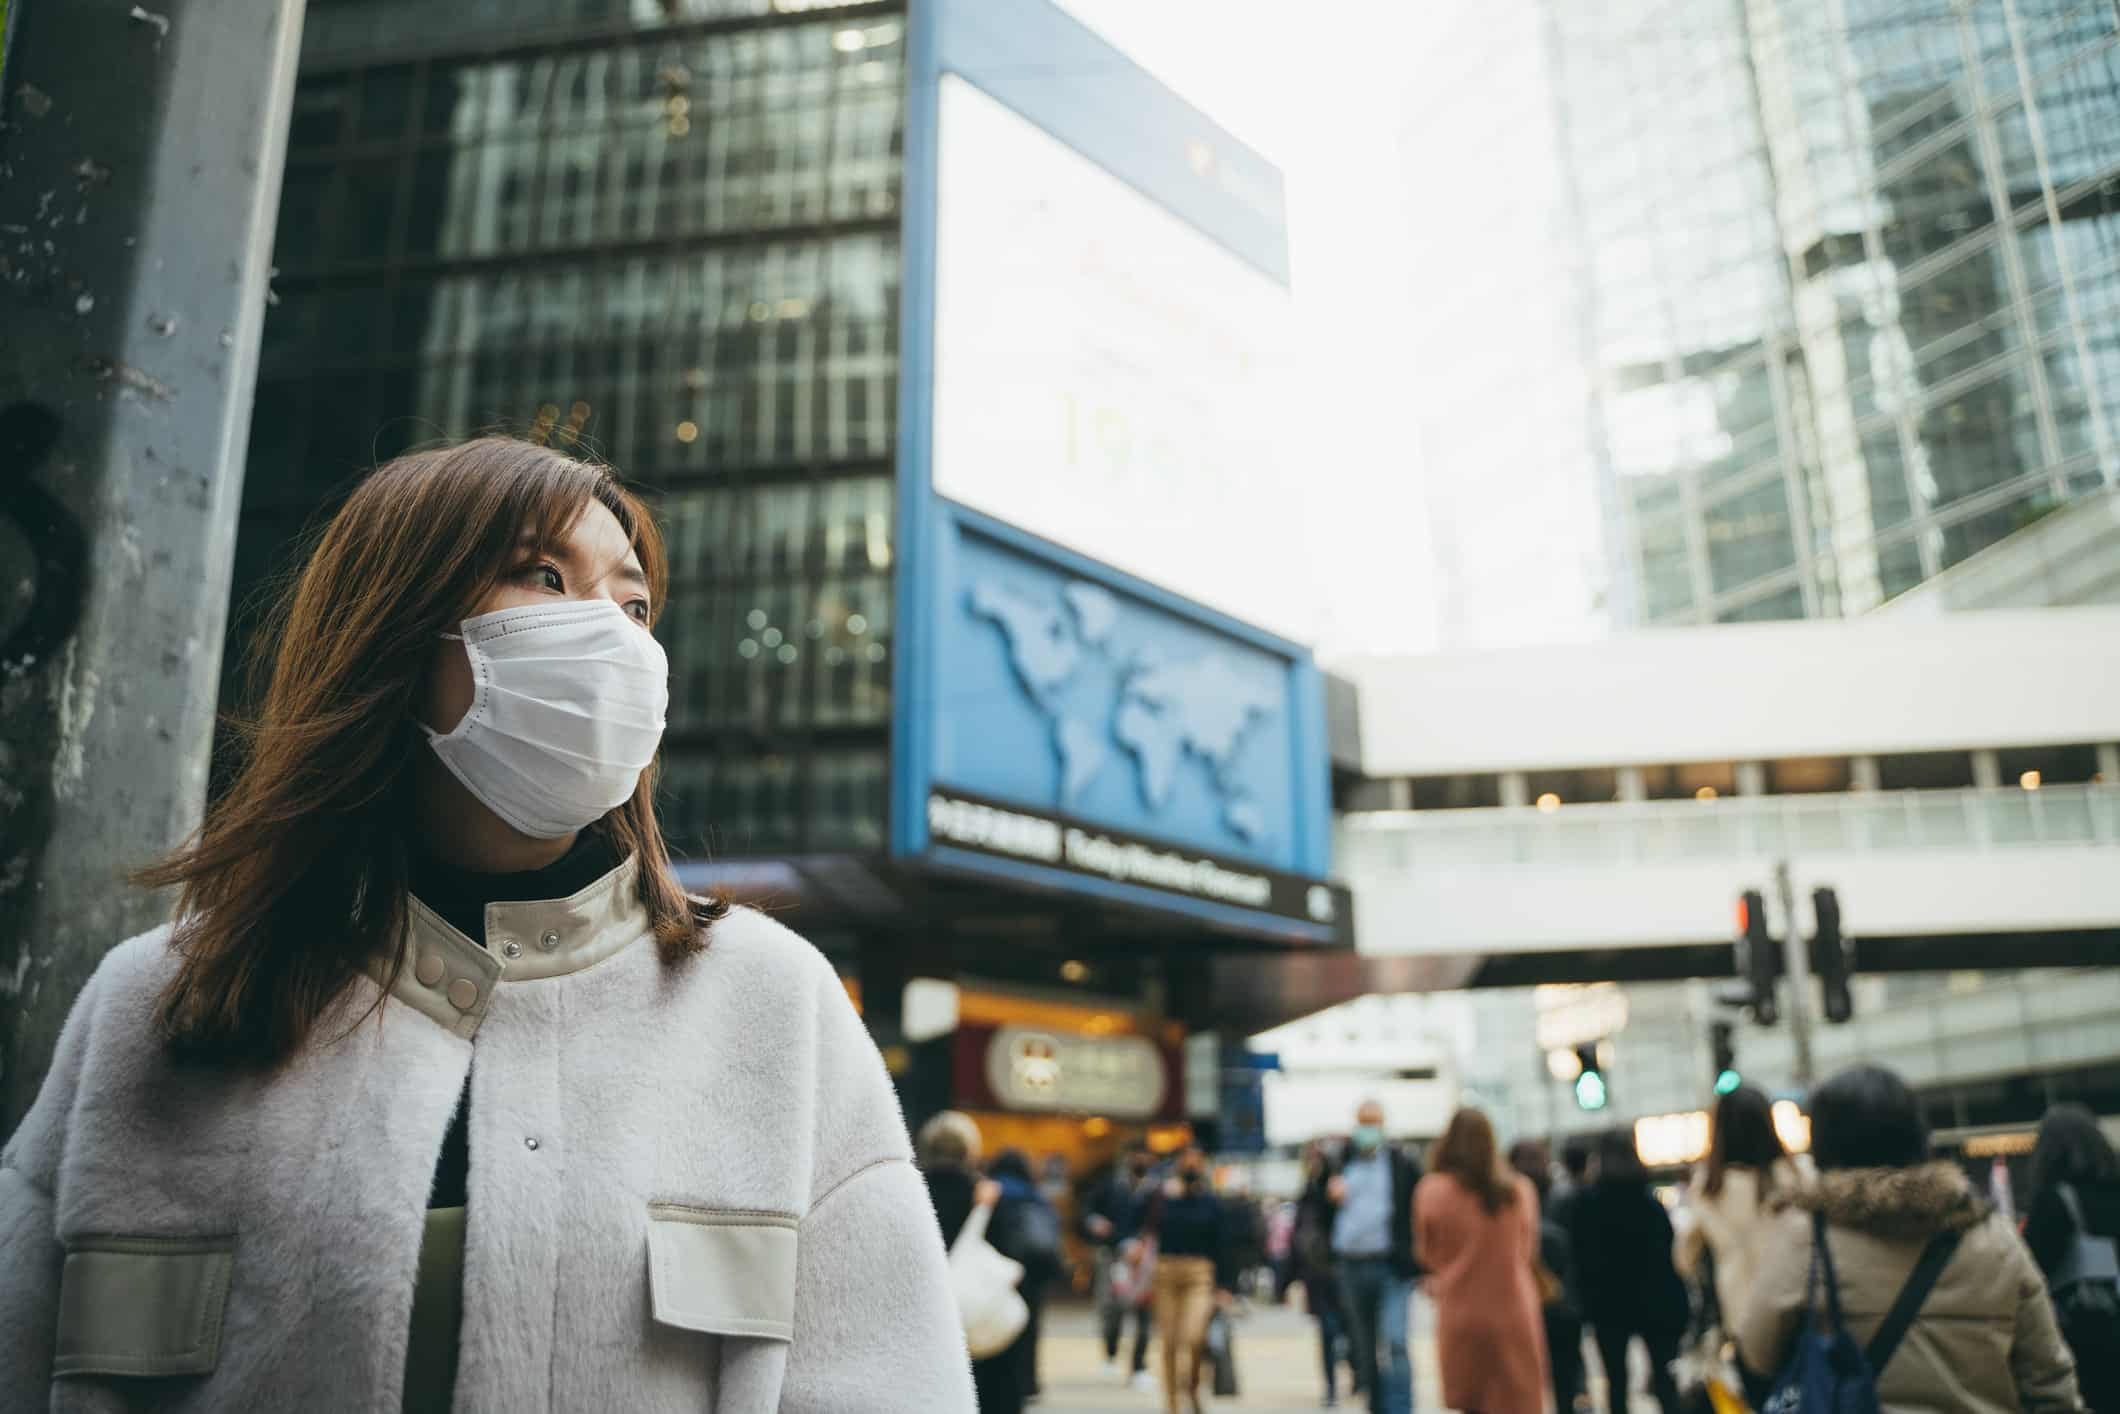 Woman wearing protective mask on the street